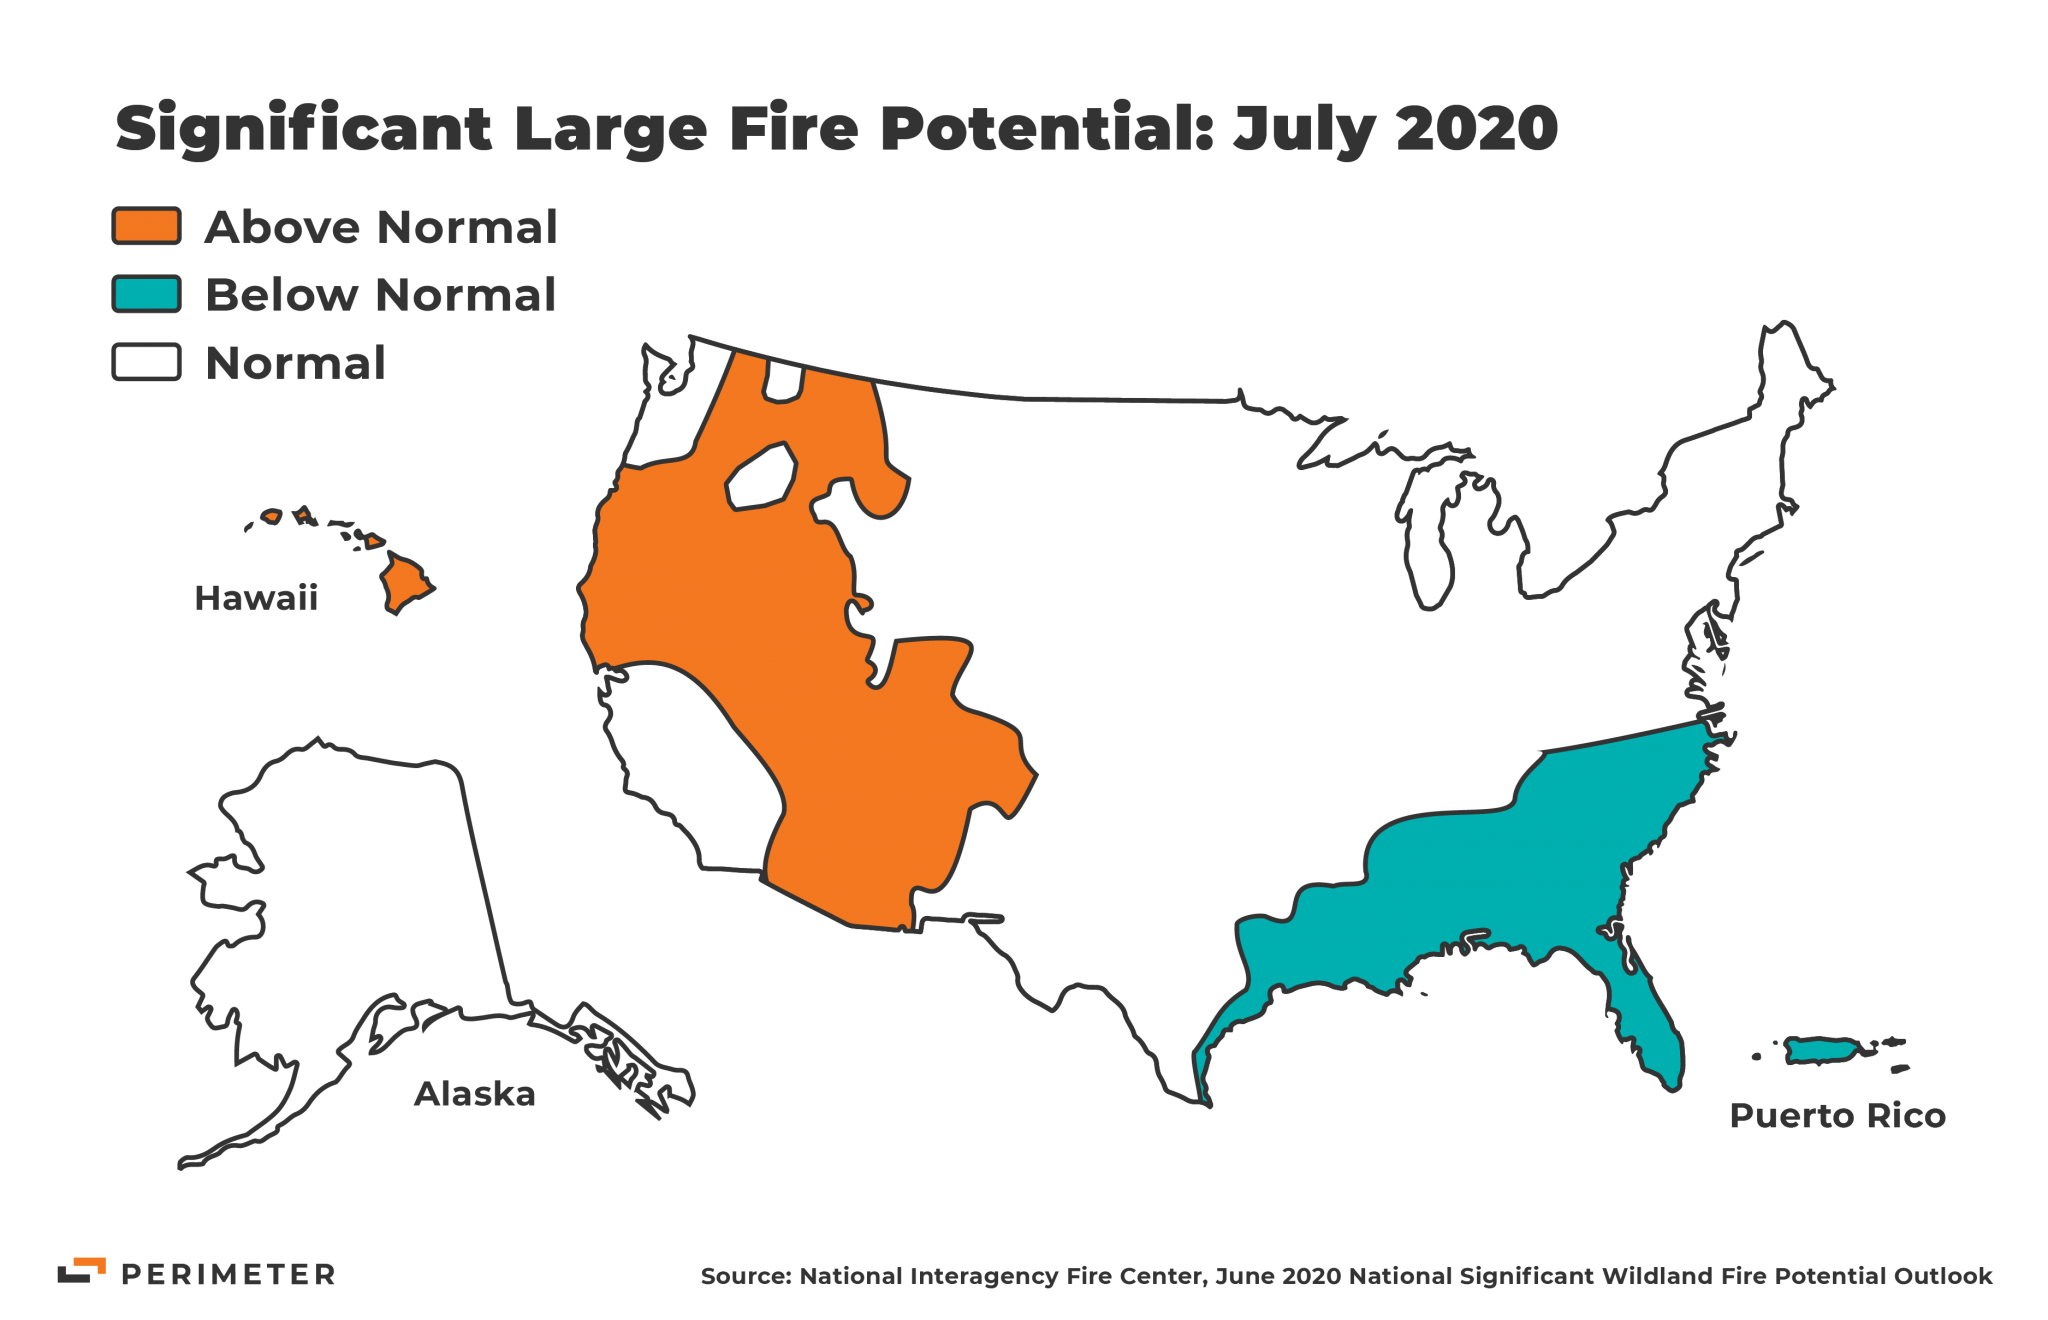 Map showing Above Normal, Below Normal, and Normal significant large fire potential risk zones for the United States in July 2020.